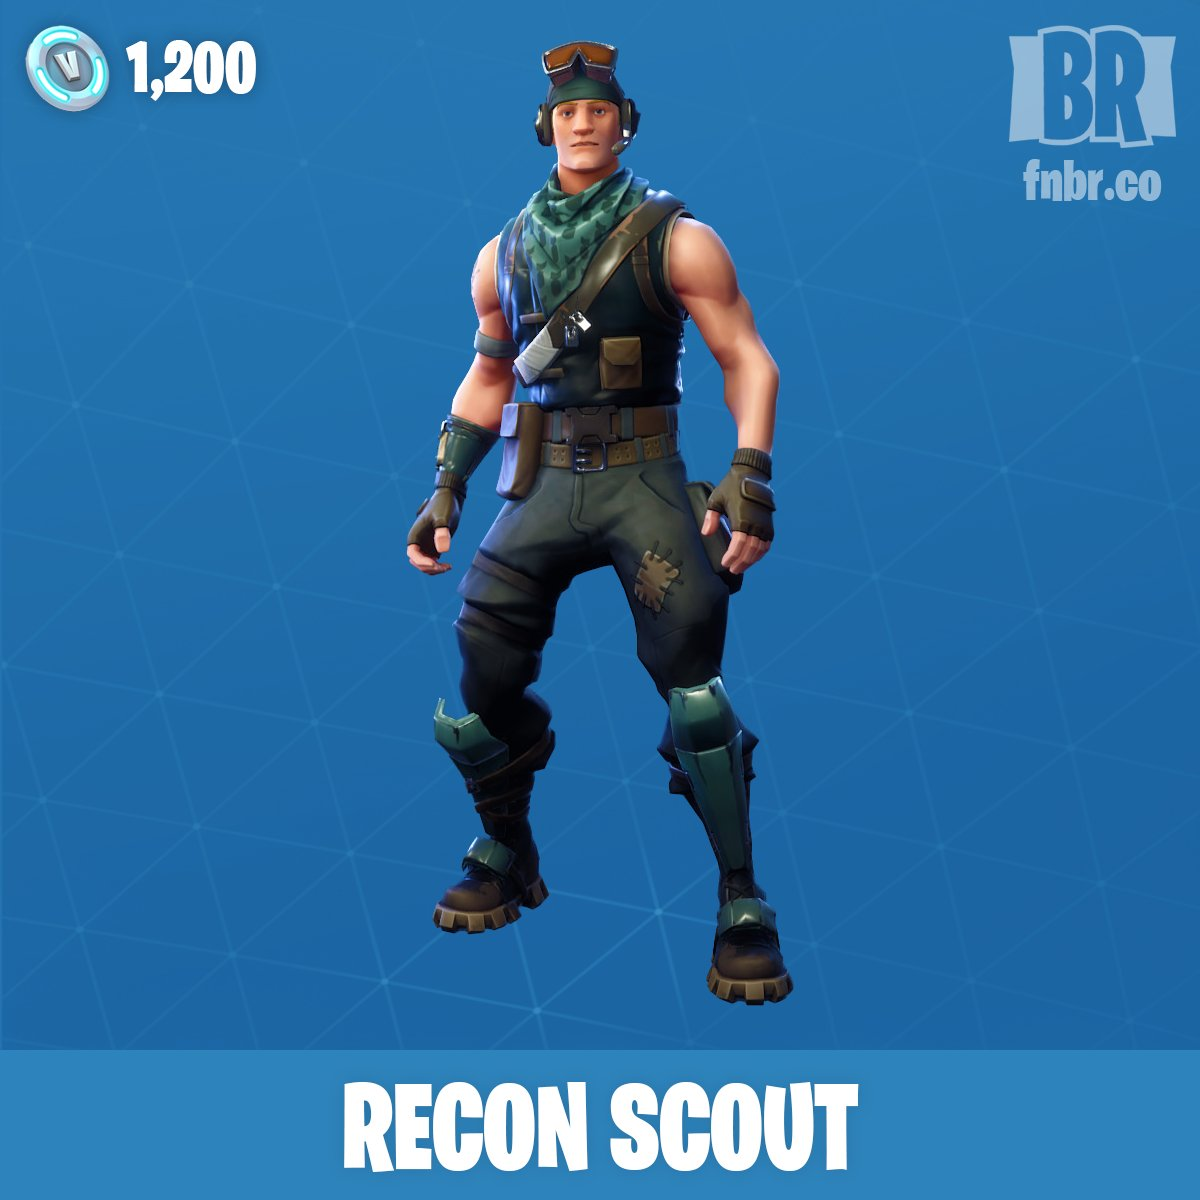 fortnite news fnbr news on twitter fyi grill sergeant was replaced by recon scout in today s item shop did anyone pick it up before it went - fortnite grill sergeant skin